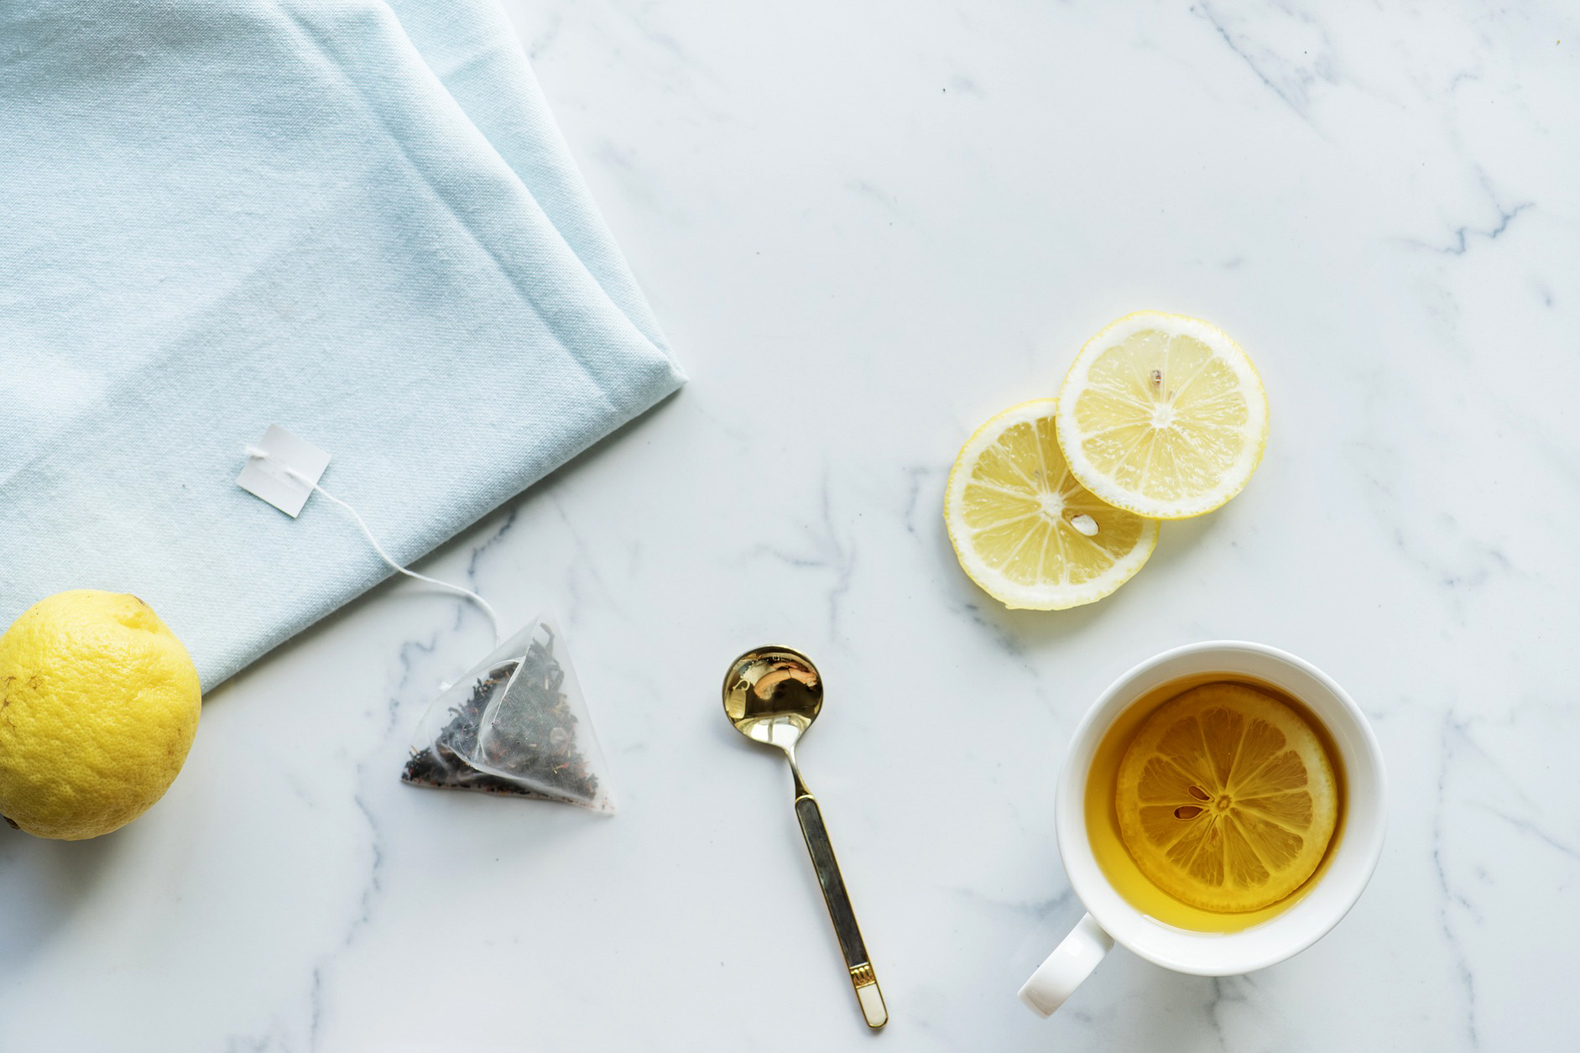 Kick your cold to the curb with these natural cold remedies